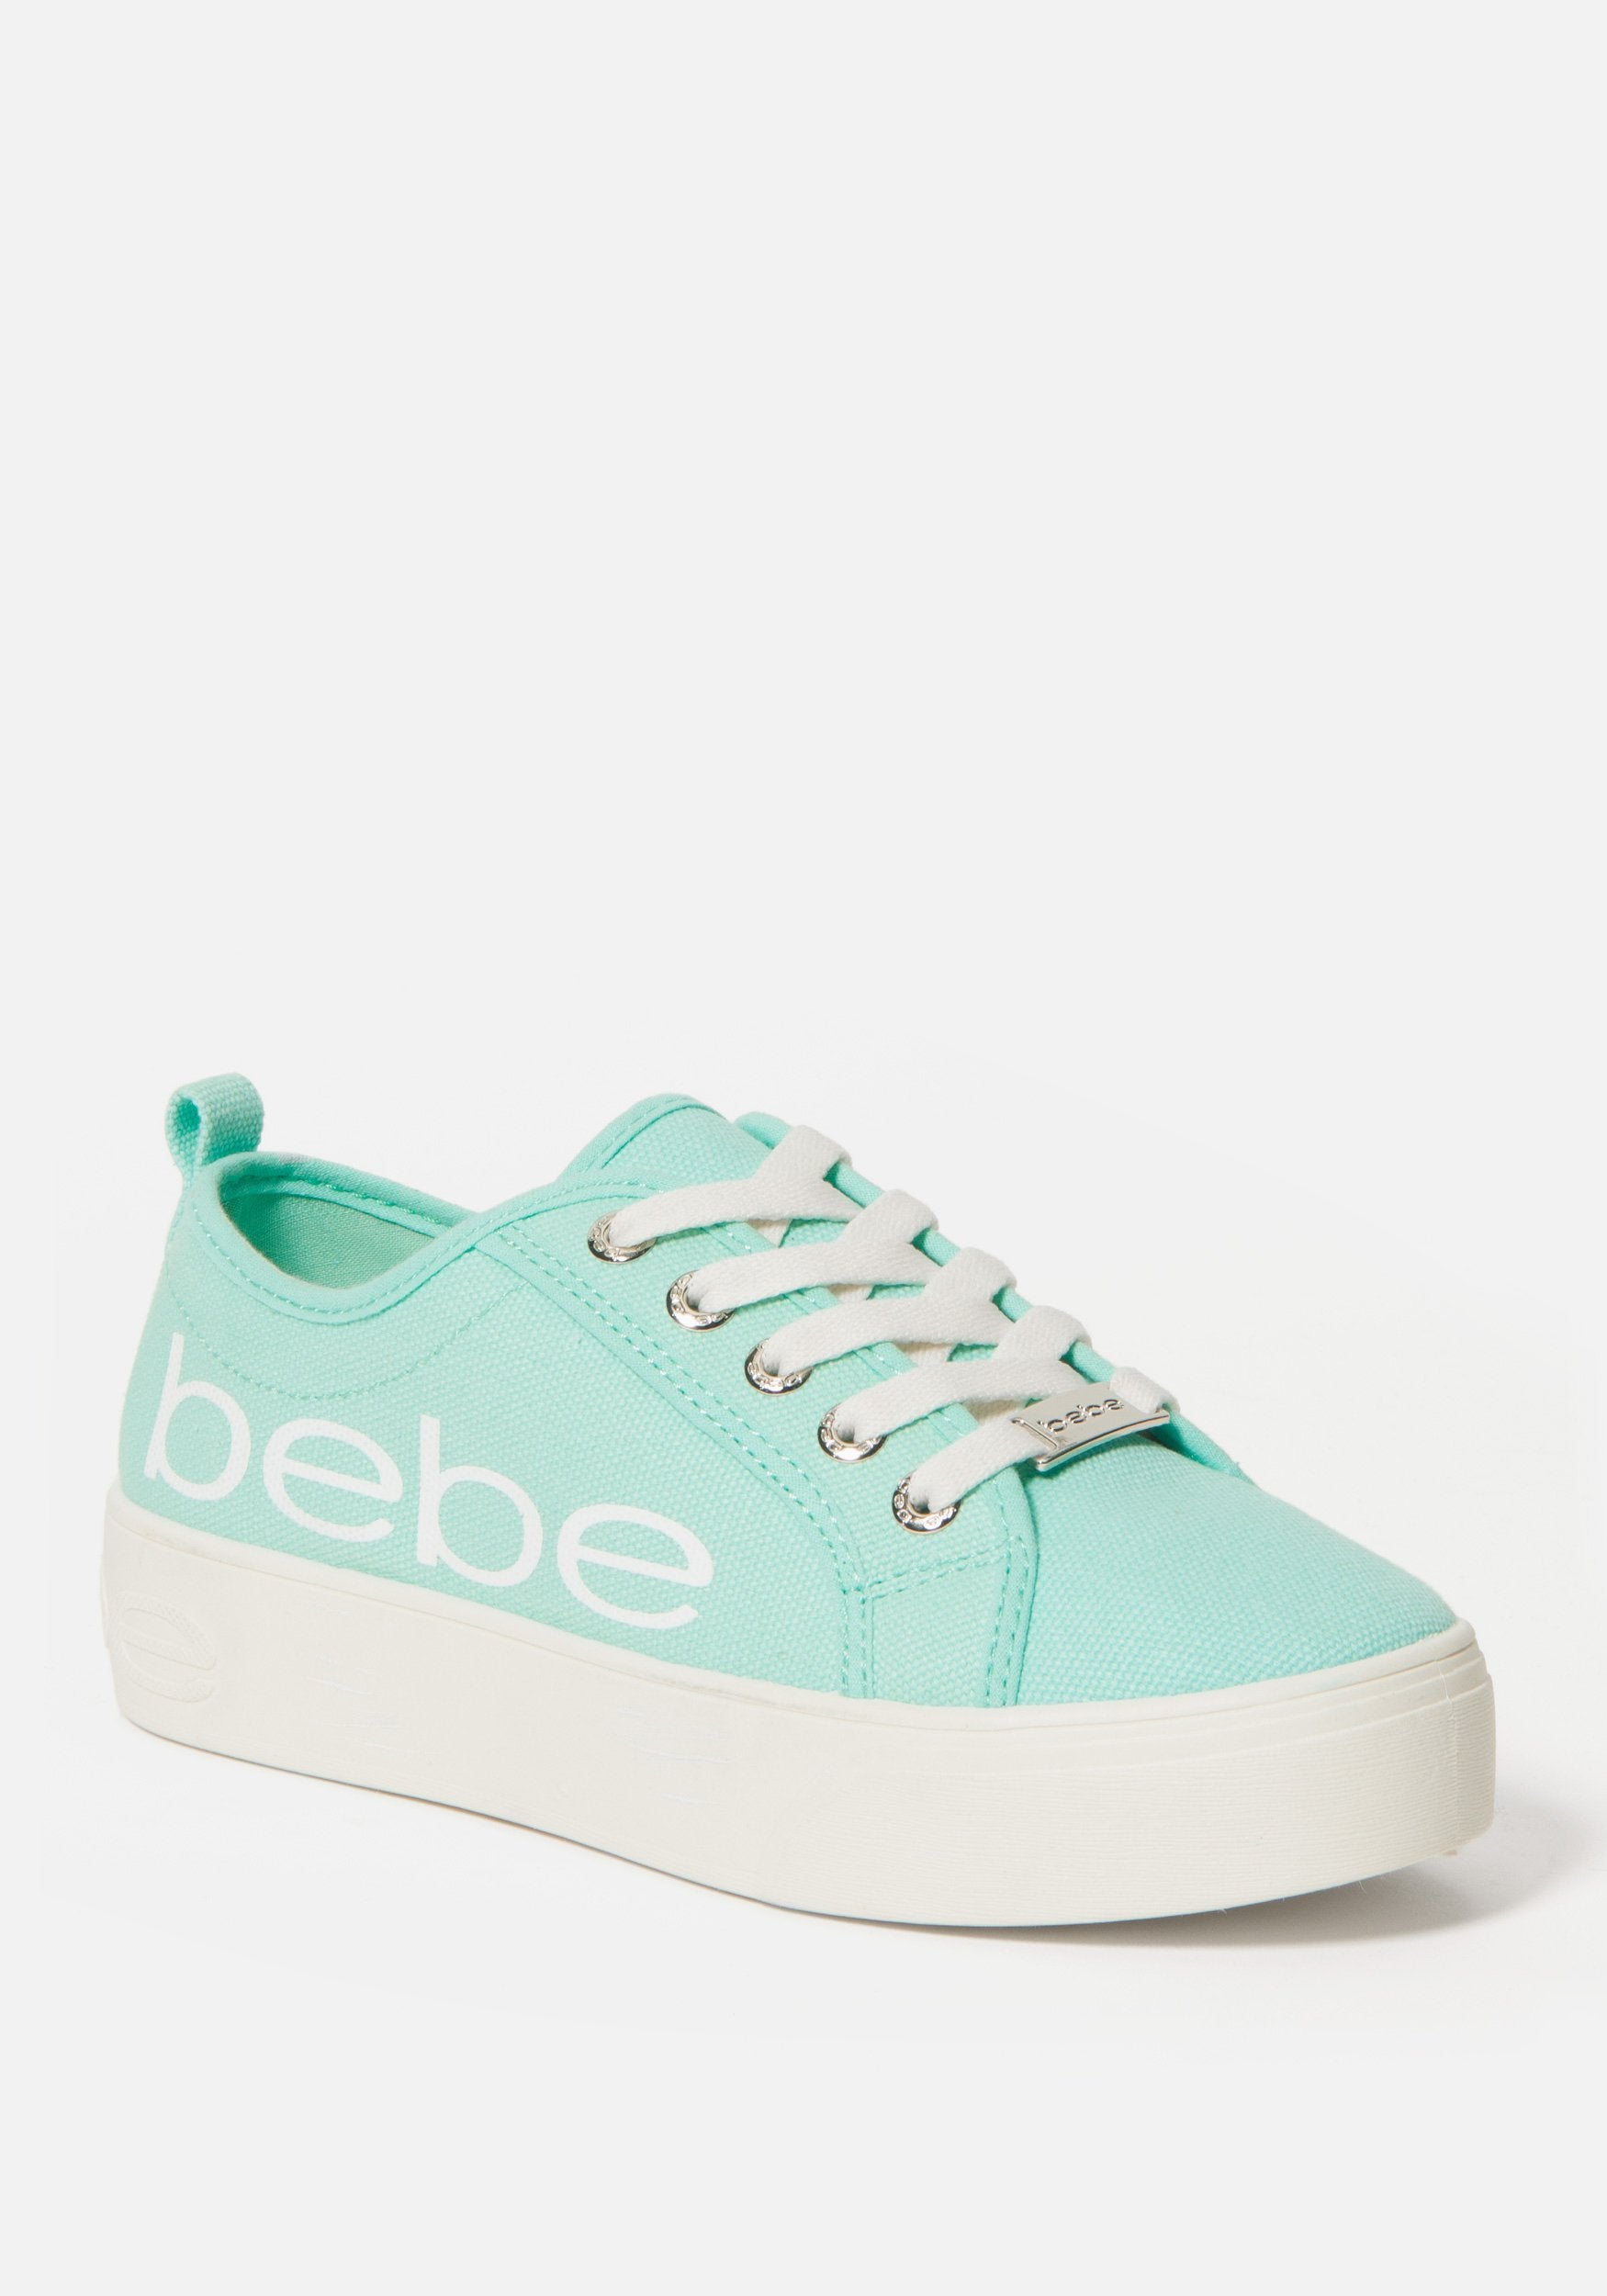 Bebe Women's Destini Platform Sneakers, Size 6 in MINT CANVAS Synthetic